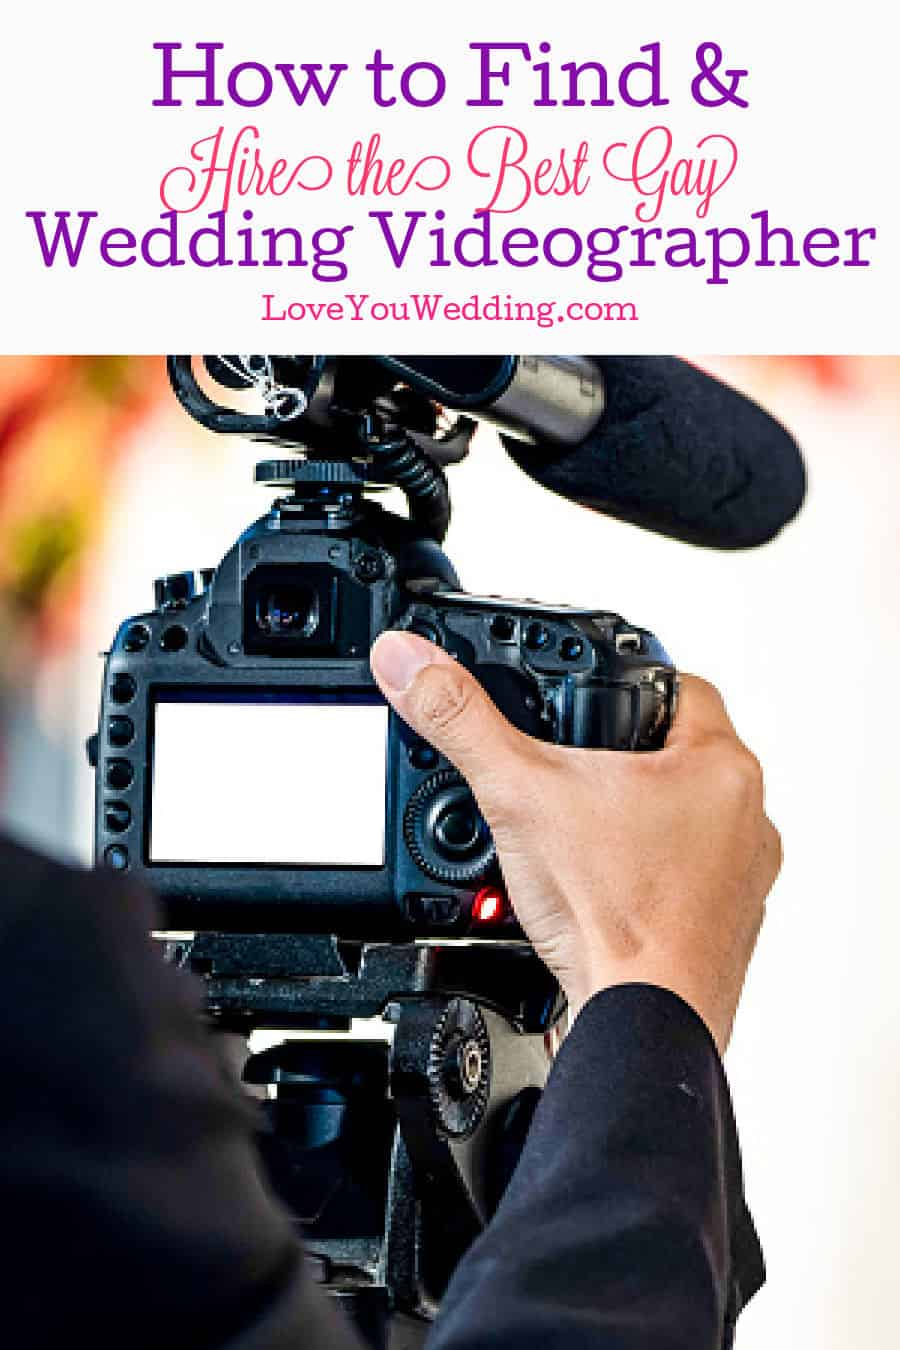 a photographer that specializes in gay wedding videography filming